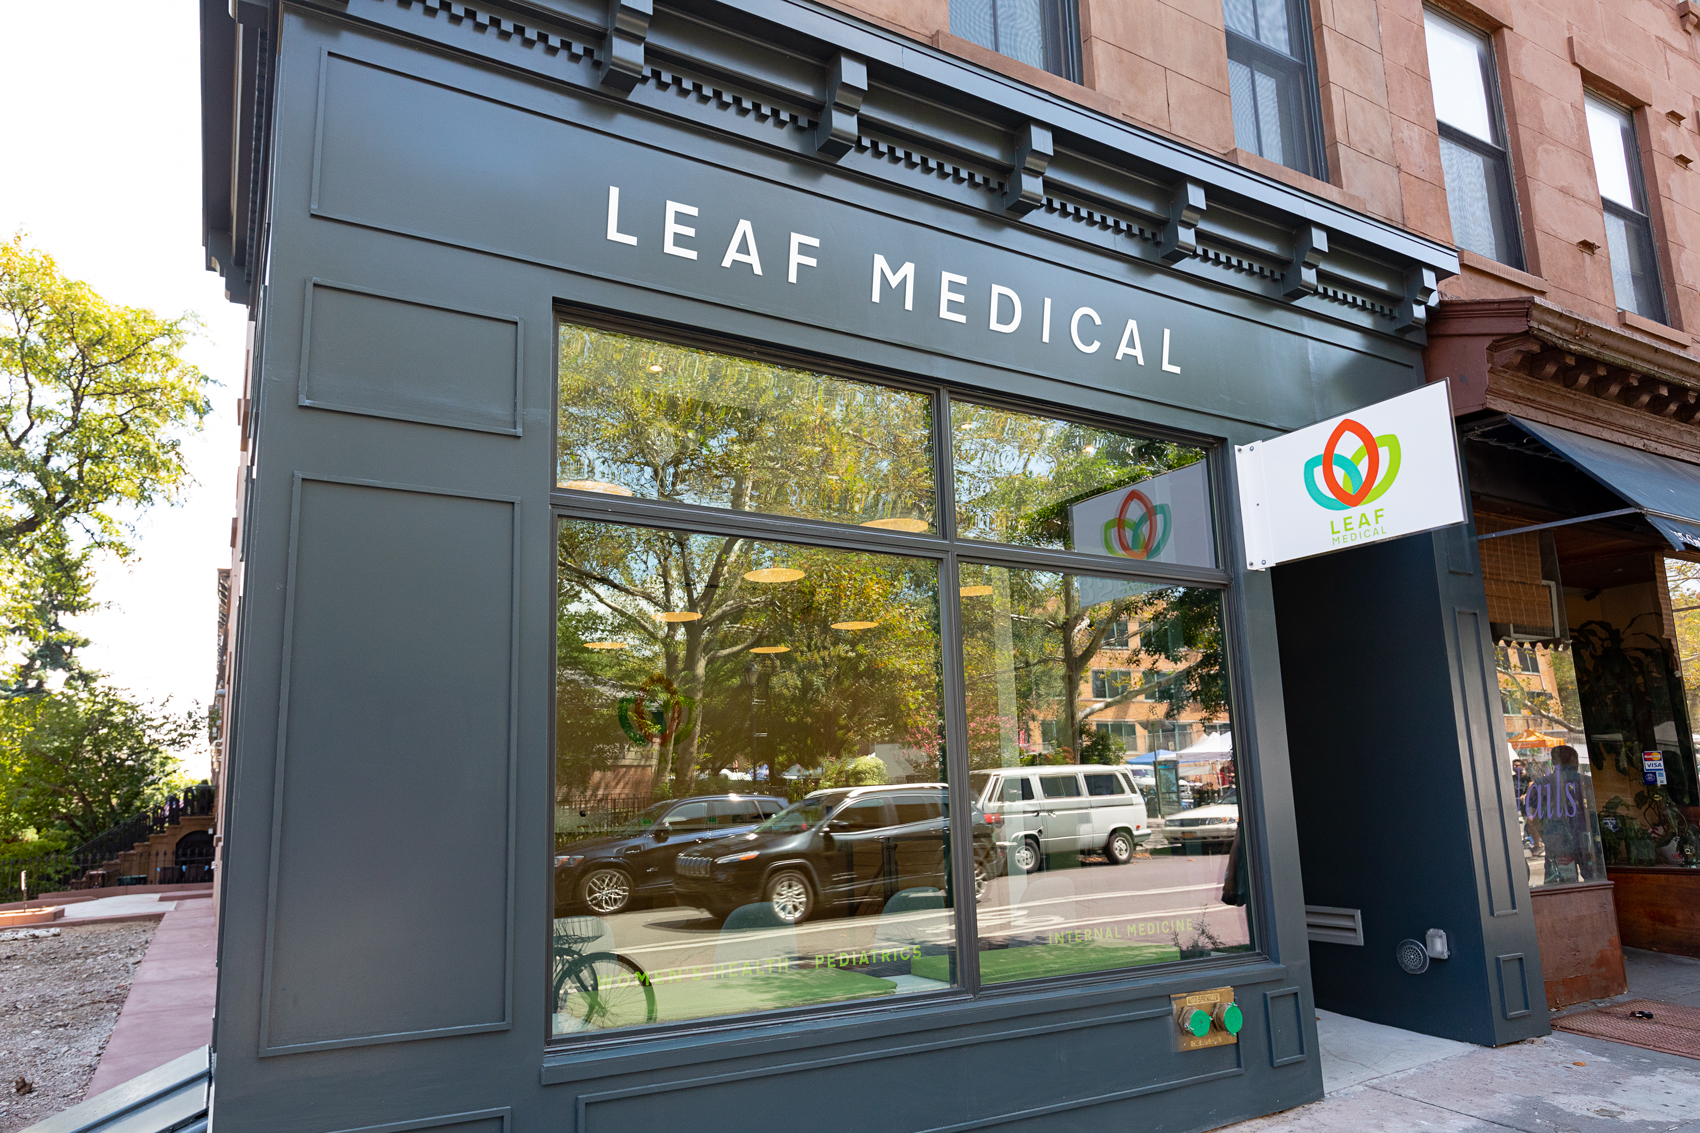 Leaf-Medical-Carroll-Gardens-Exterior.jpg